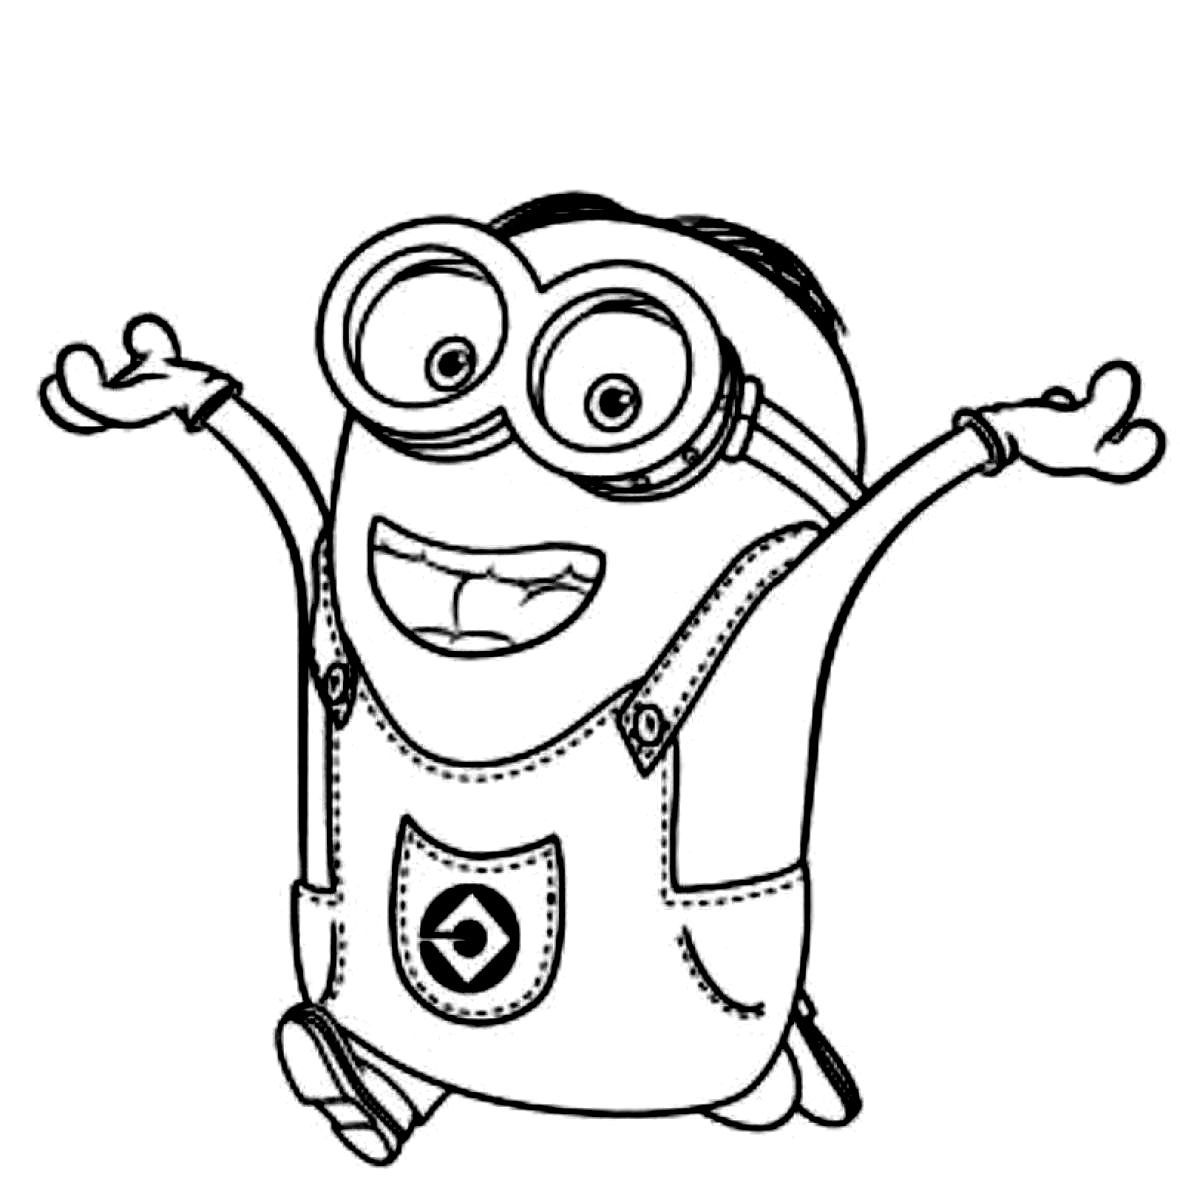 Minion maid coloring pages - Free Printable Despicable Me Coloring Pages For Kids